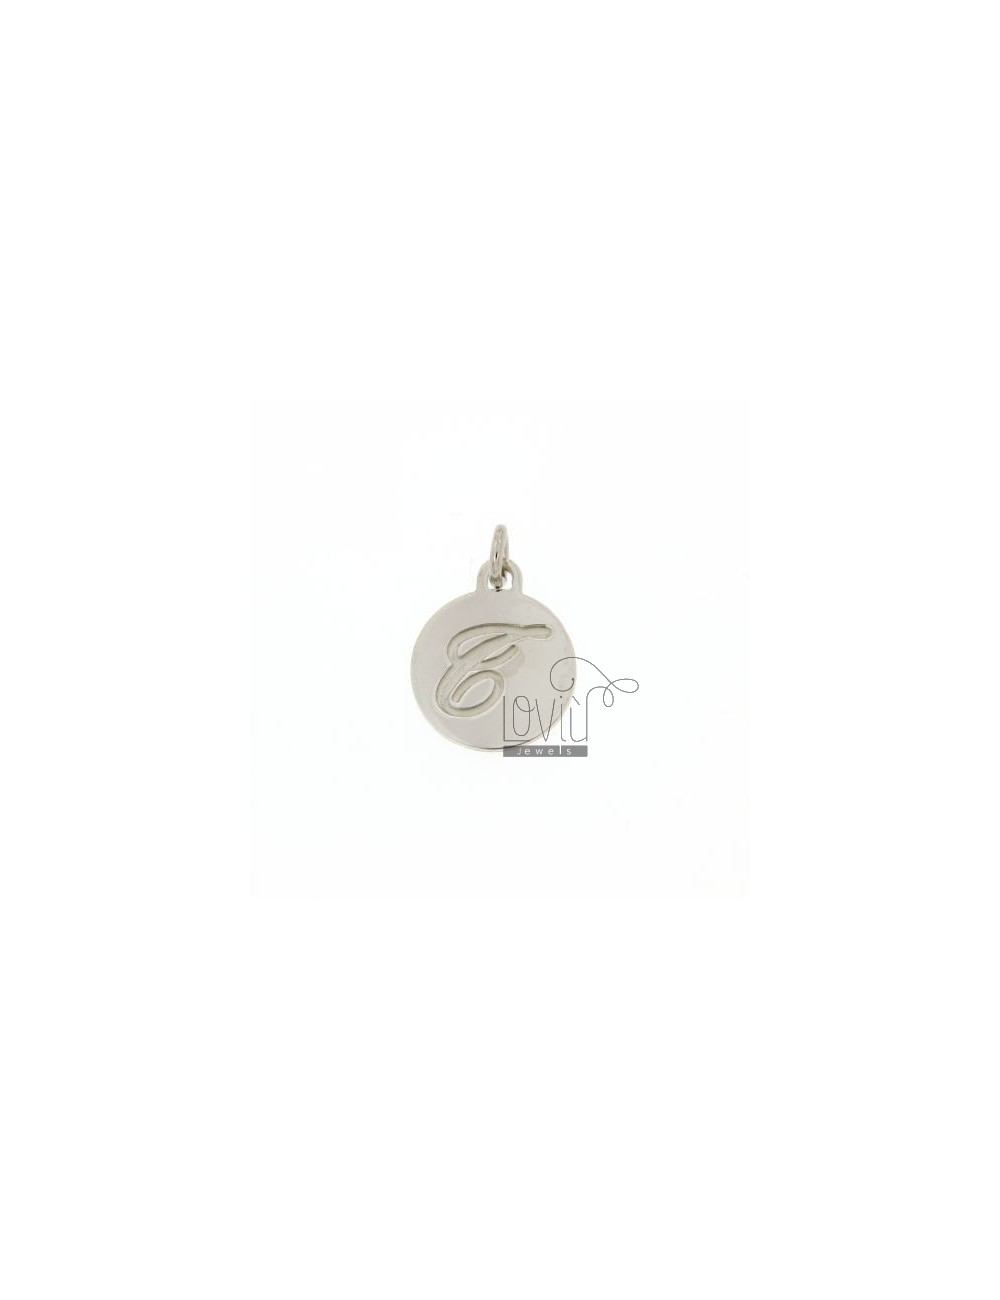 CHARM ROUND 15 MM WITH LETTER T ENGRAVED IN AG TIT 925 ‰ RHODIUM